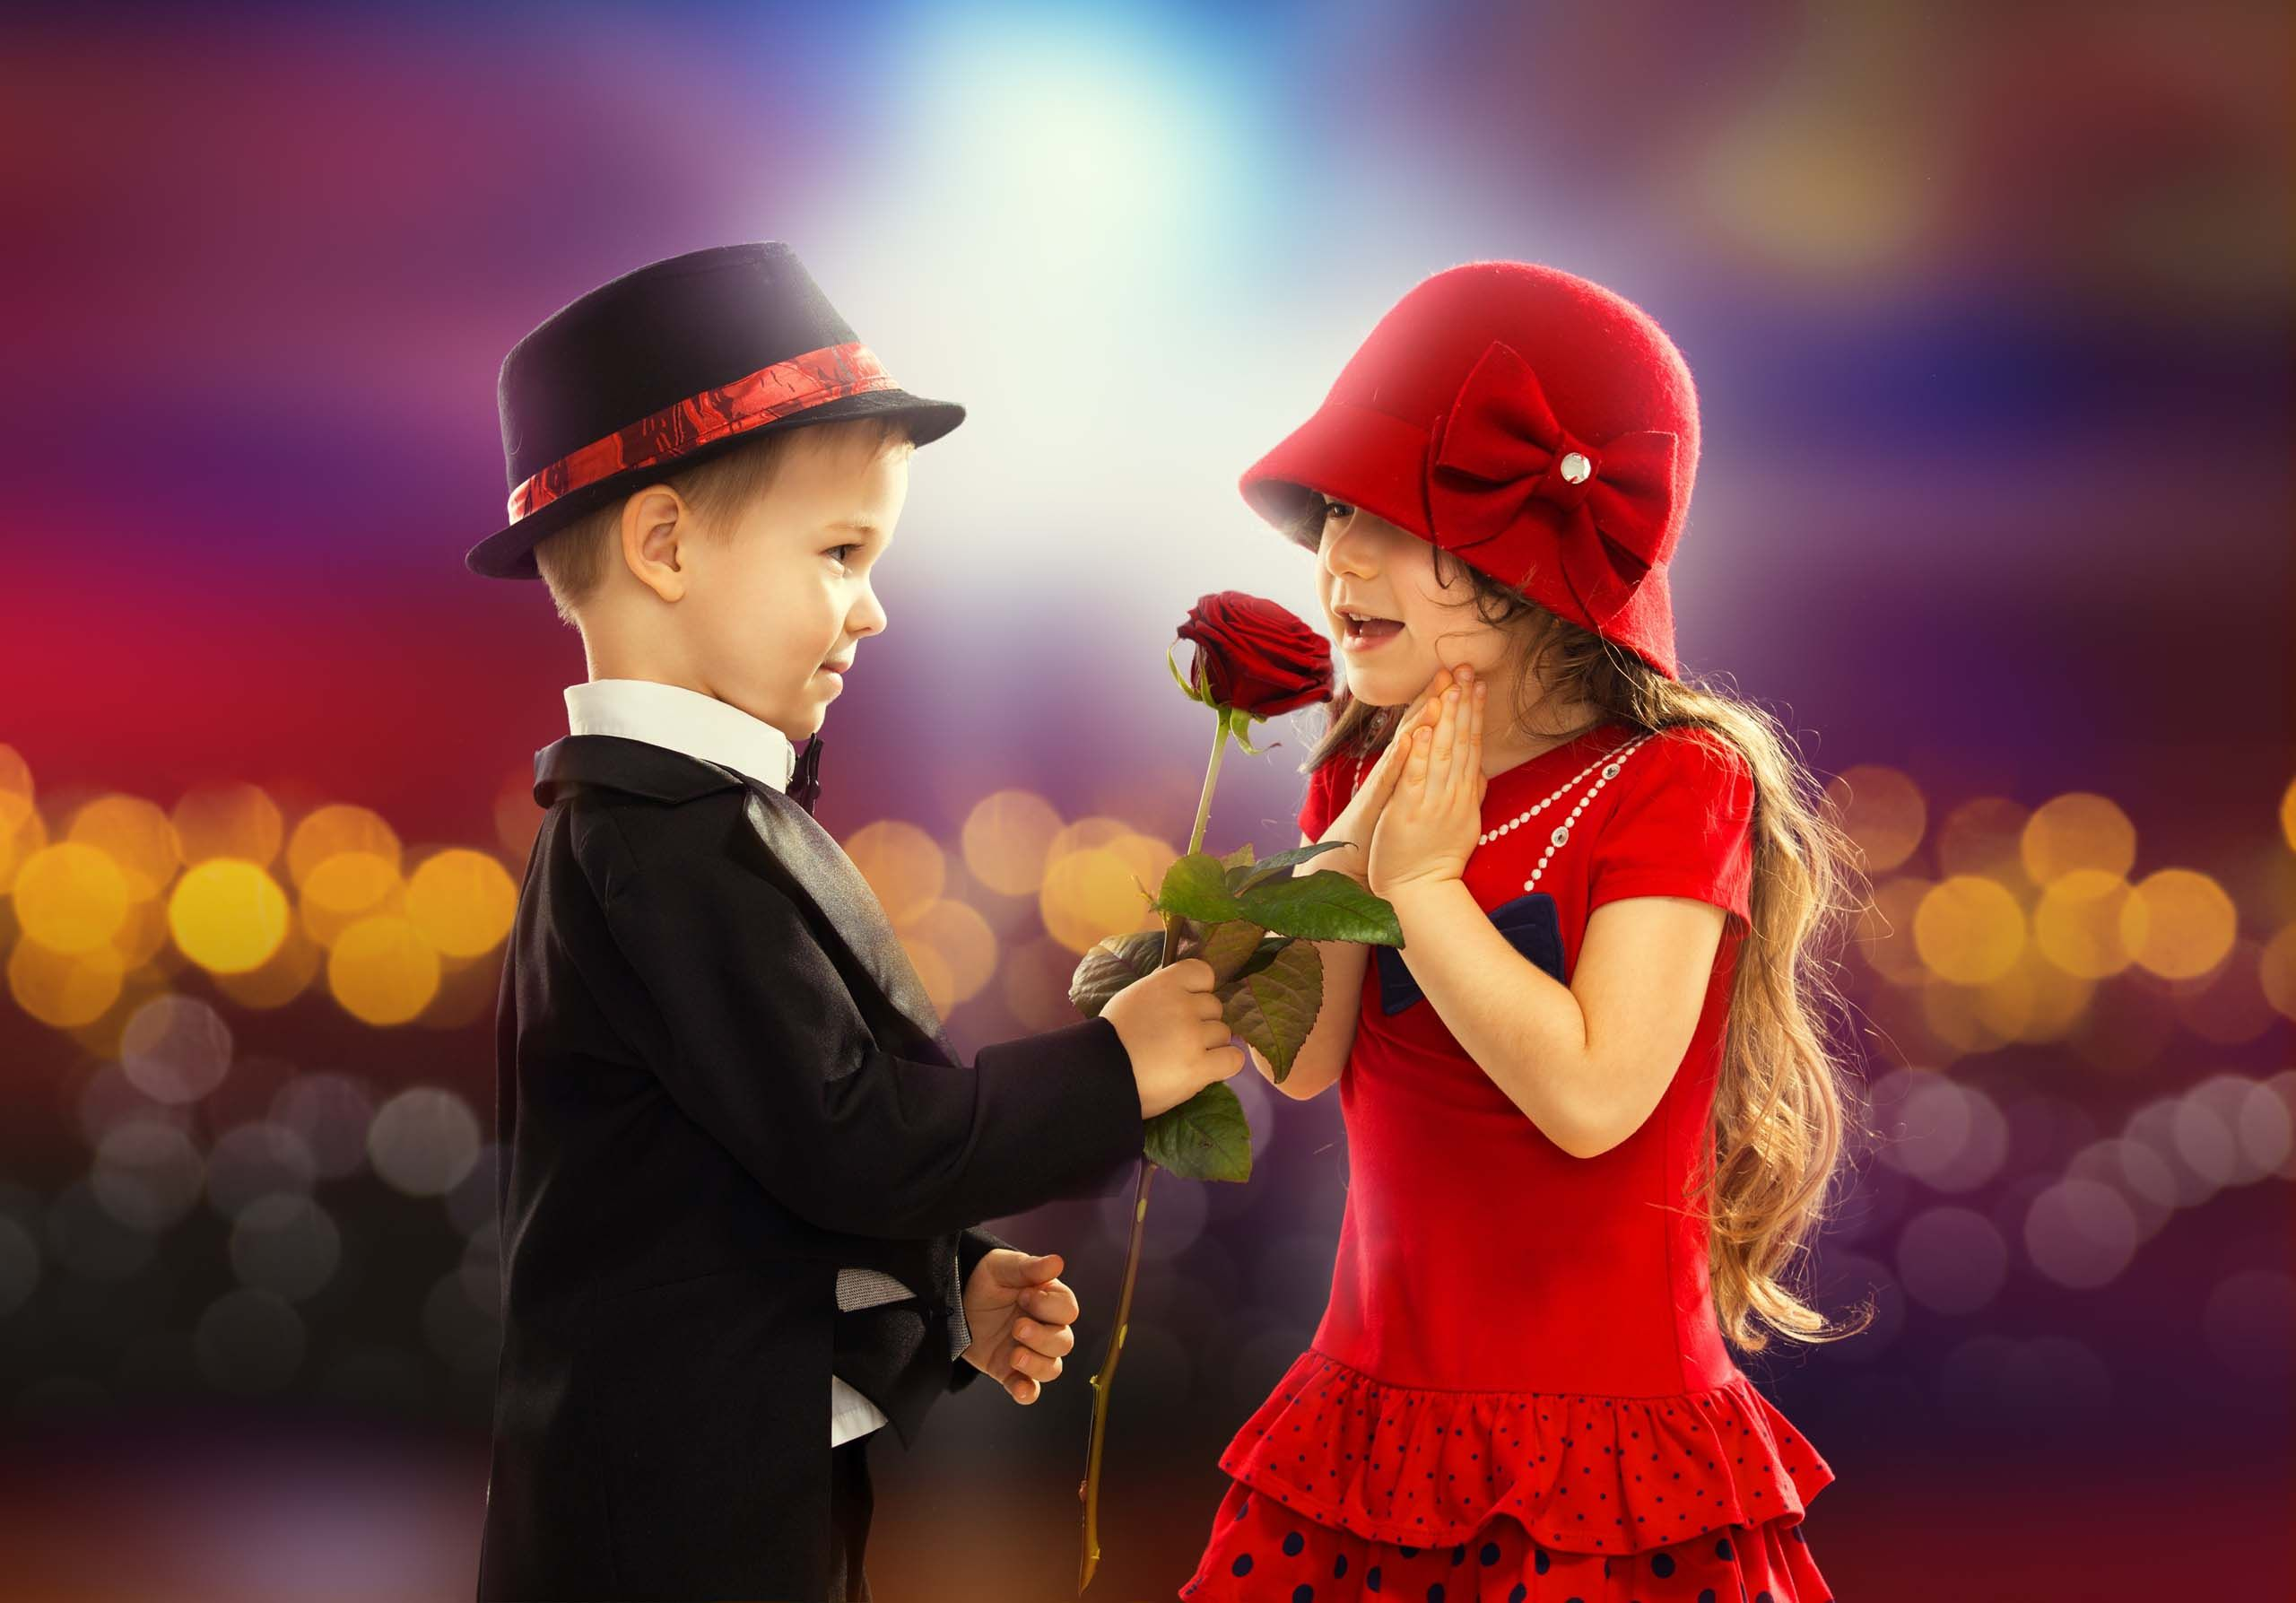 Handsome boy proposing charming girl HD Wallpapers Rocks Love 2560x1787